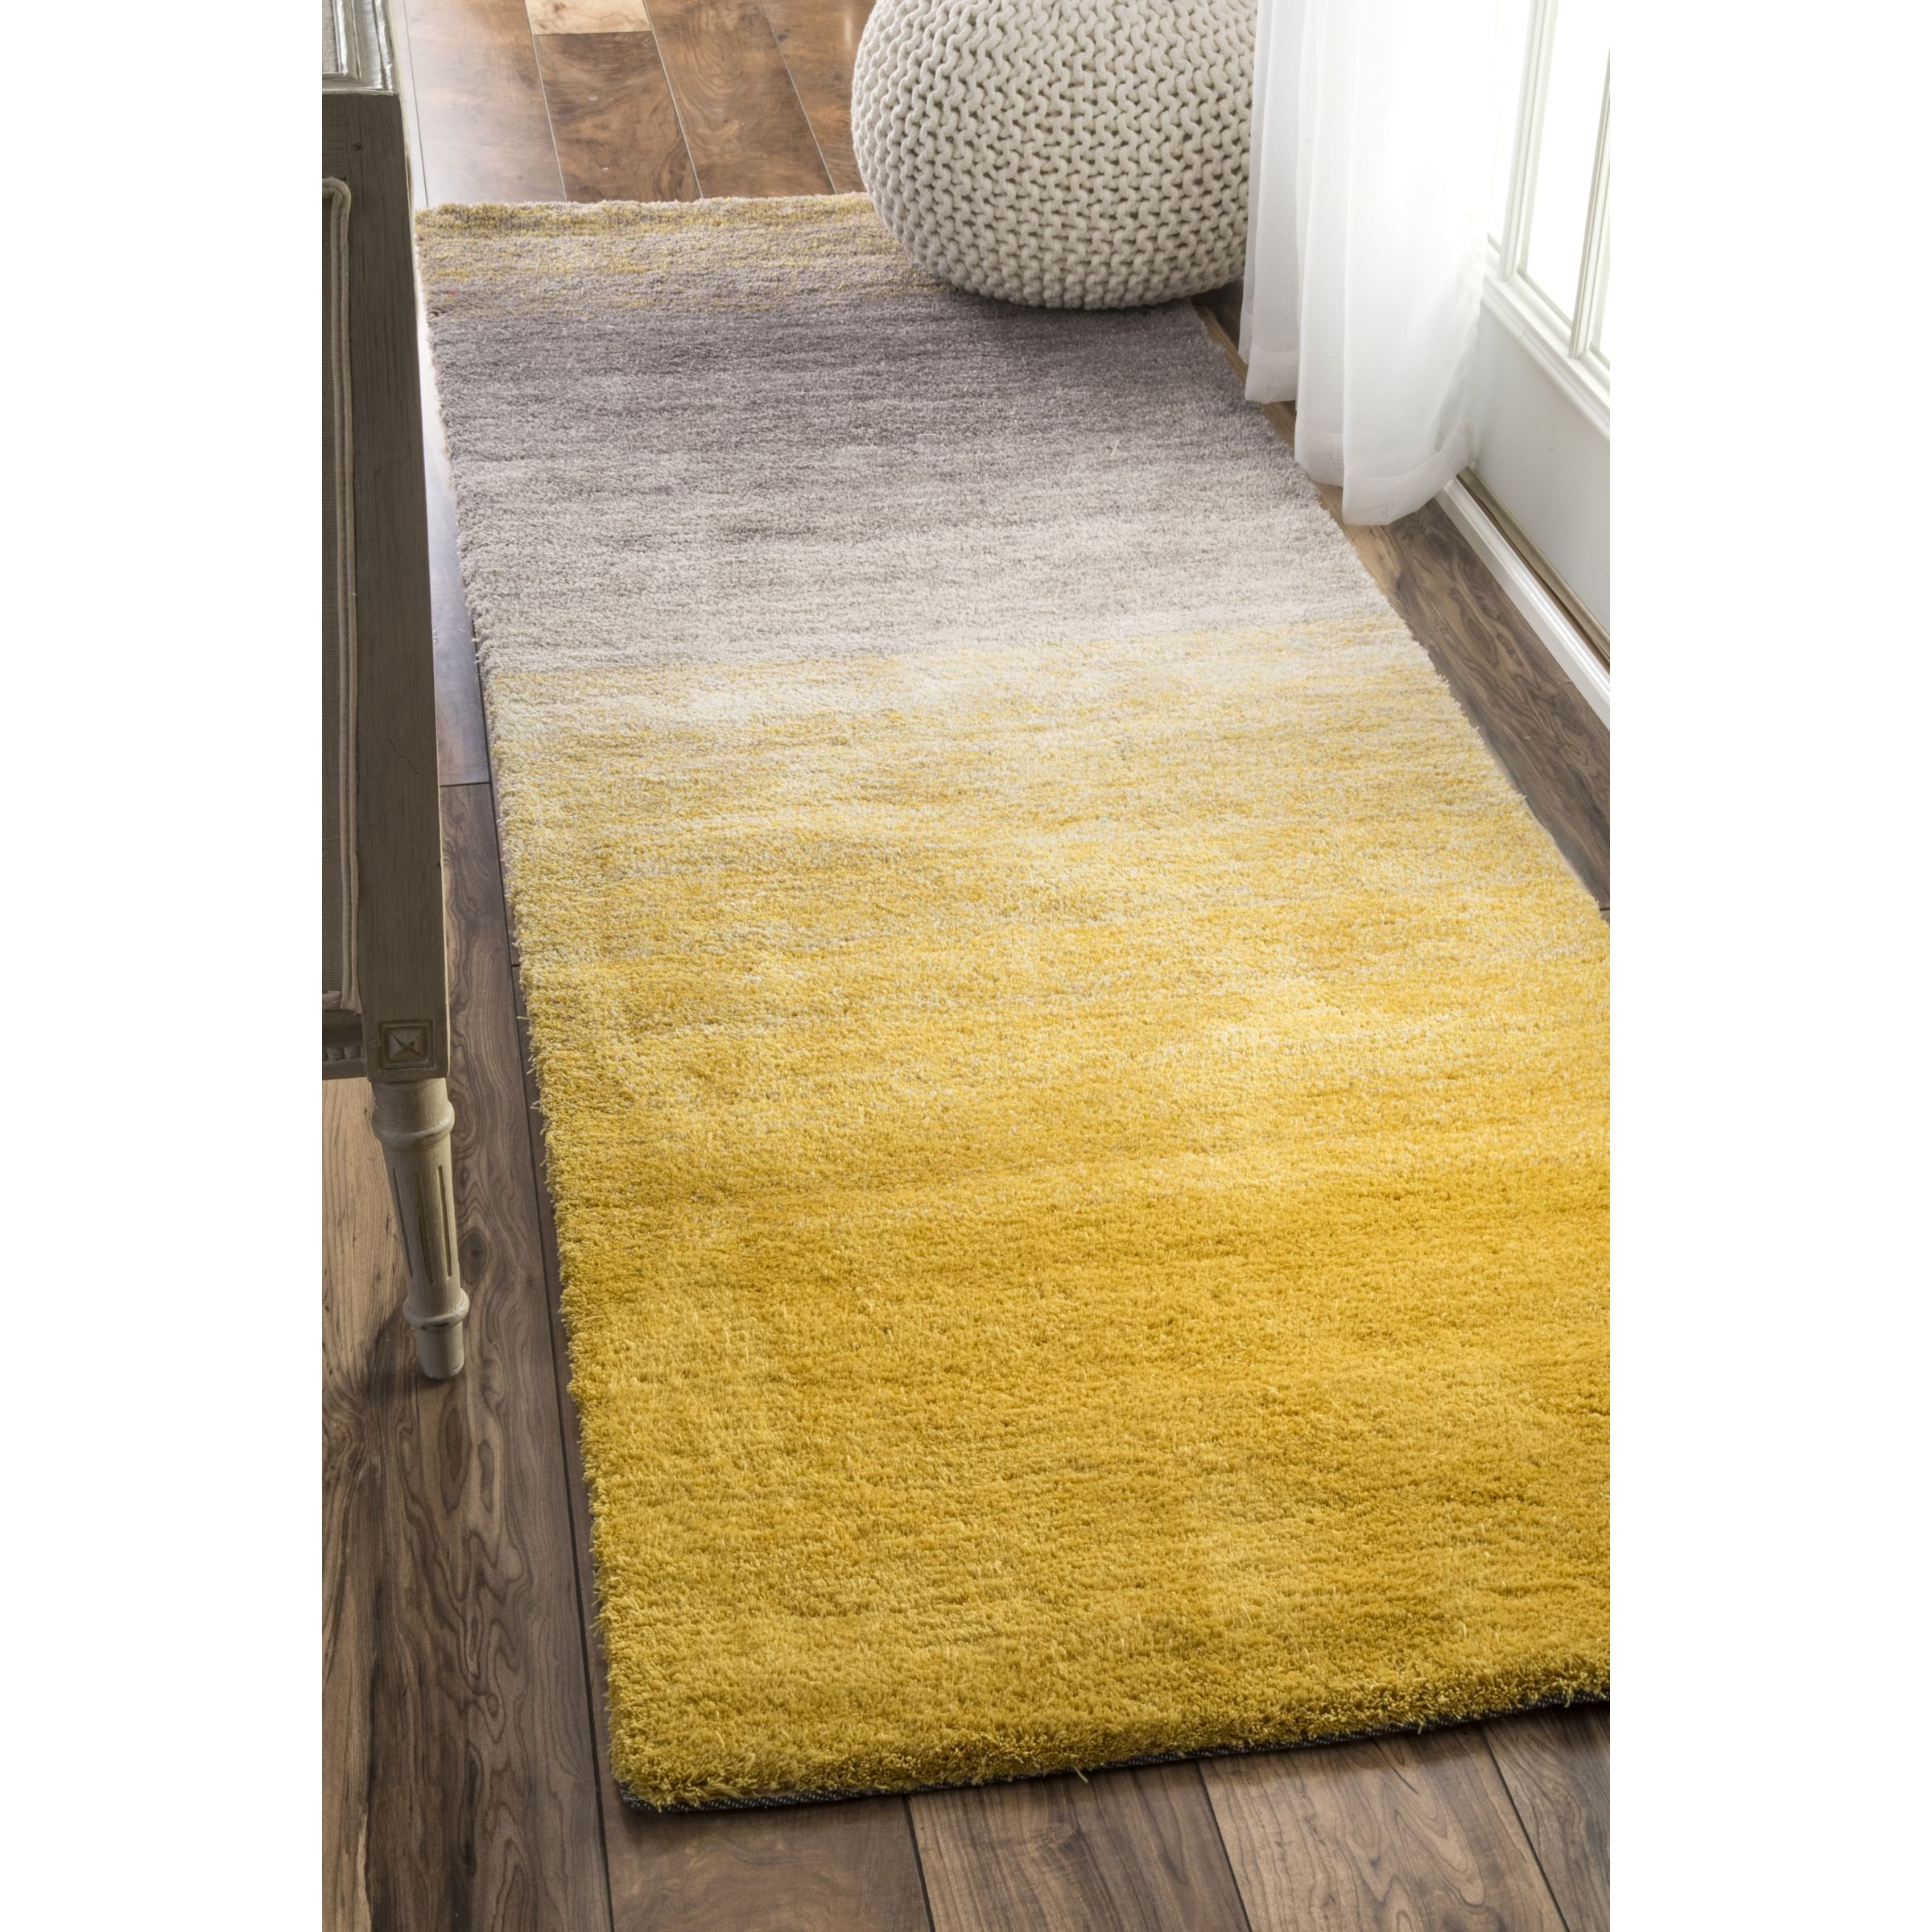 Stunning Mercury Rowu0026reg; Bier Sion Yellow Area Rug yellow area rug